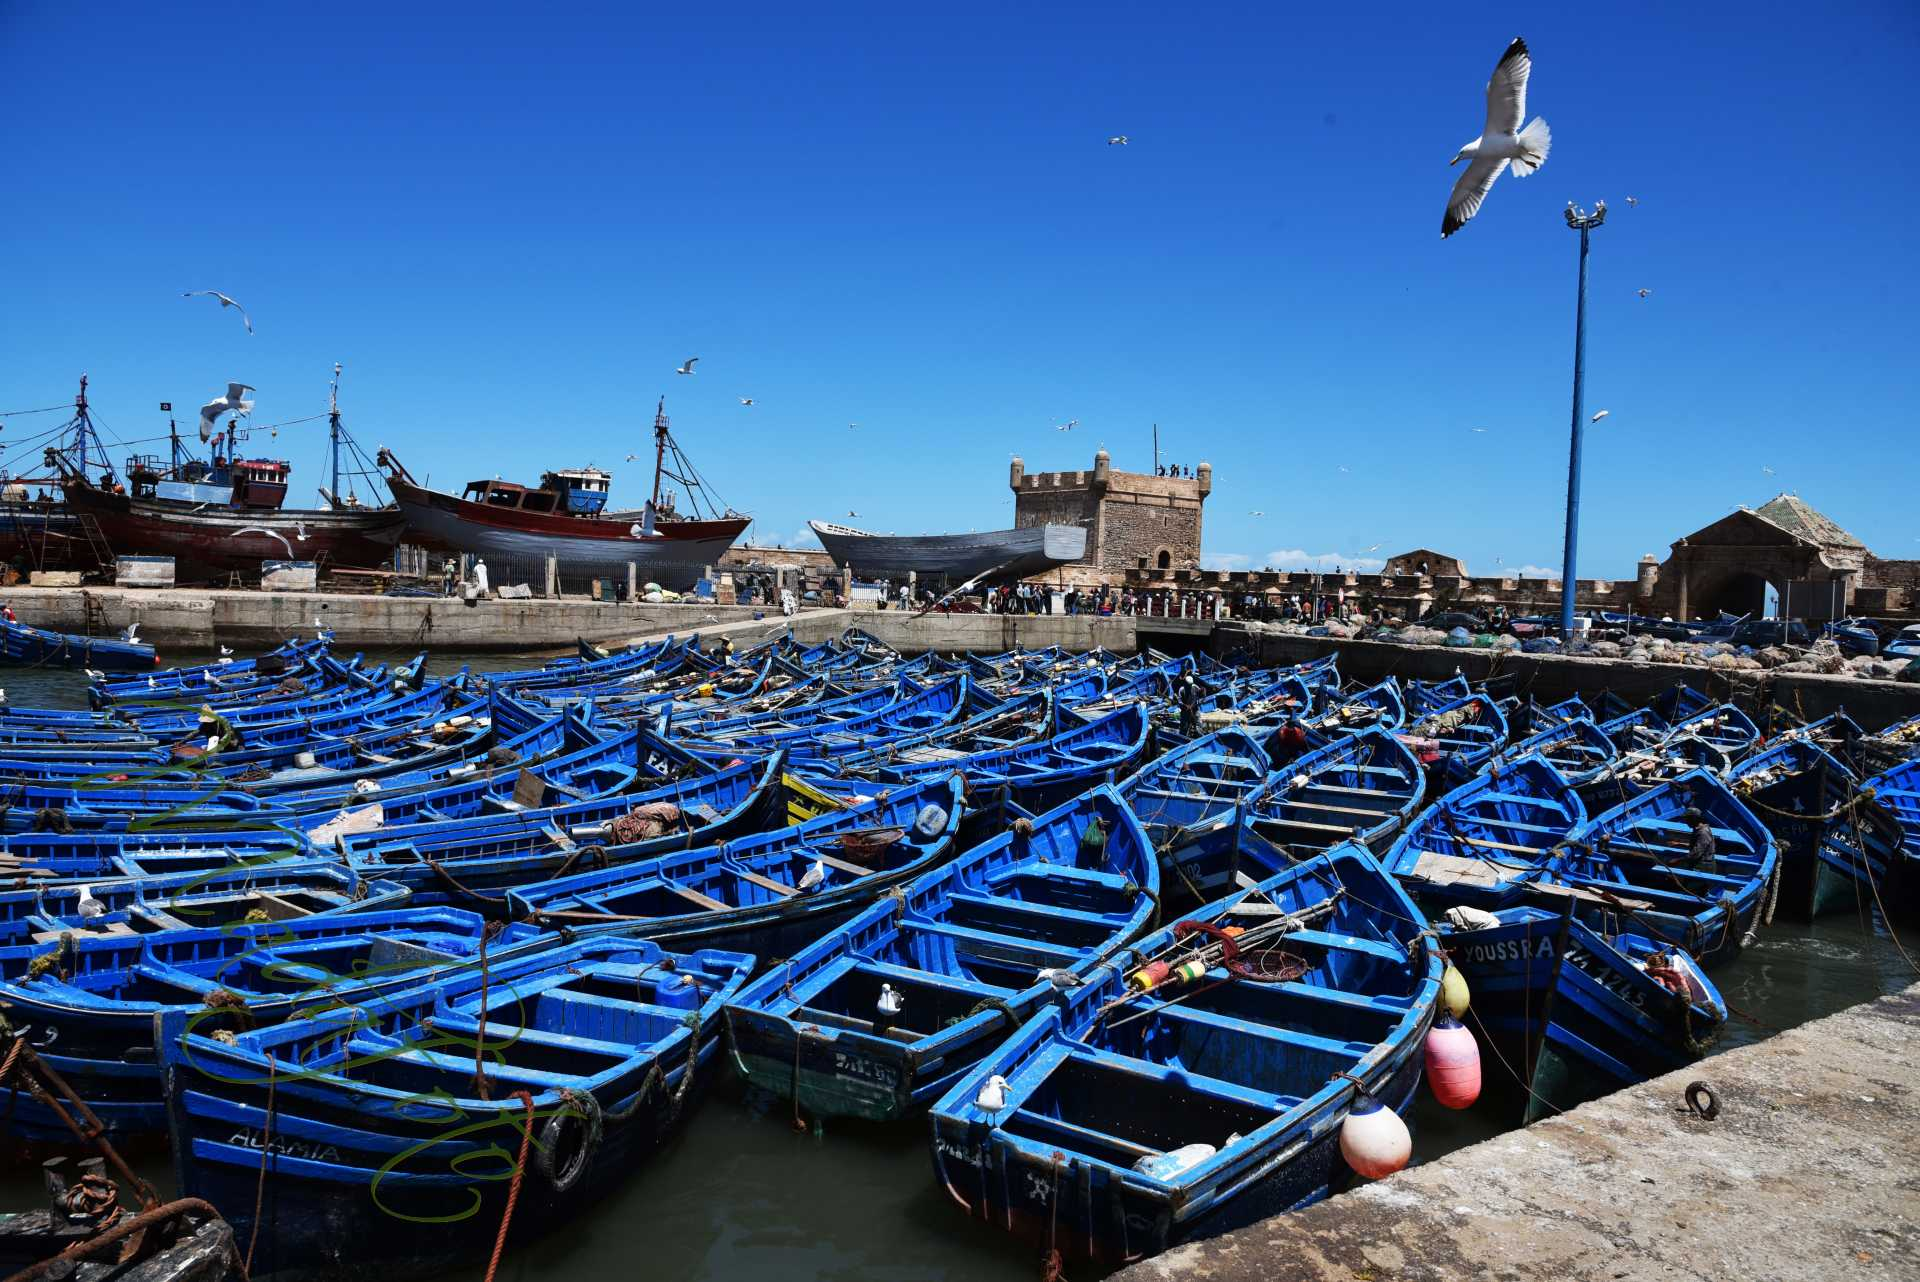 (6) Maroko – Essaouira (As-Sawira)